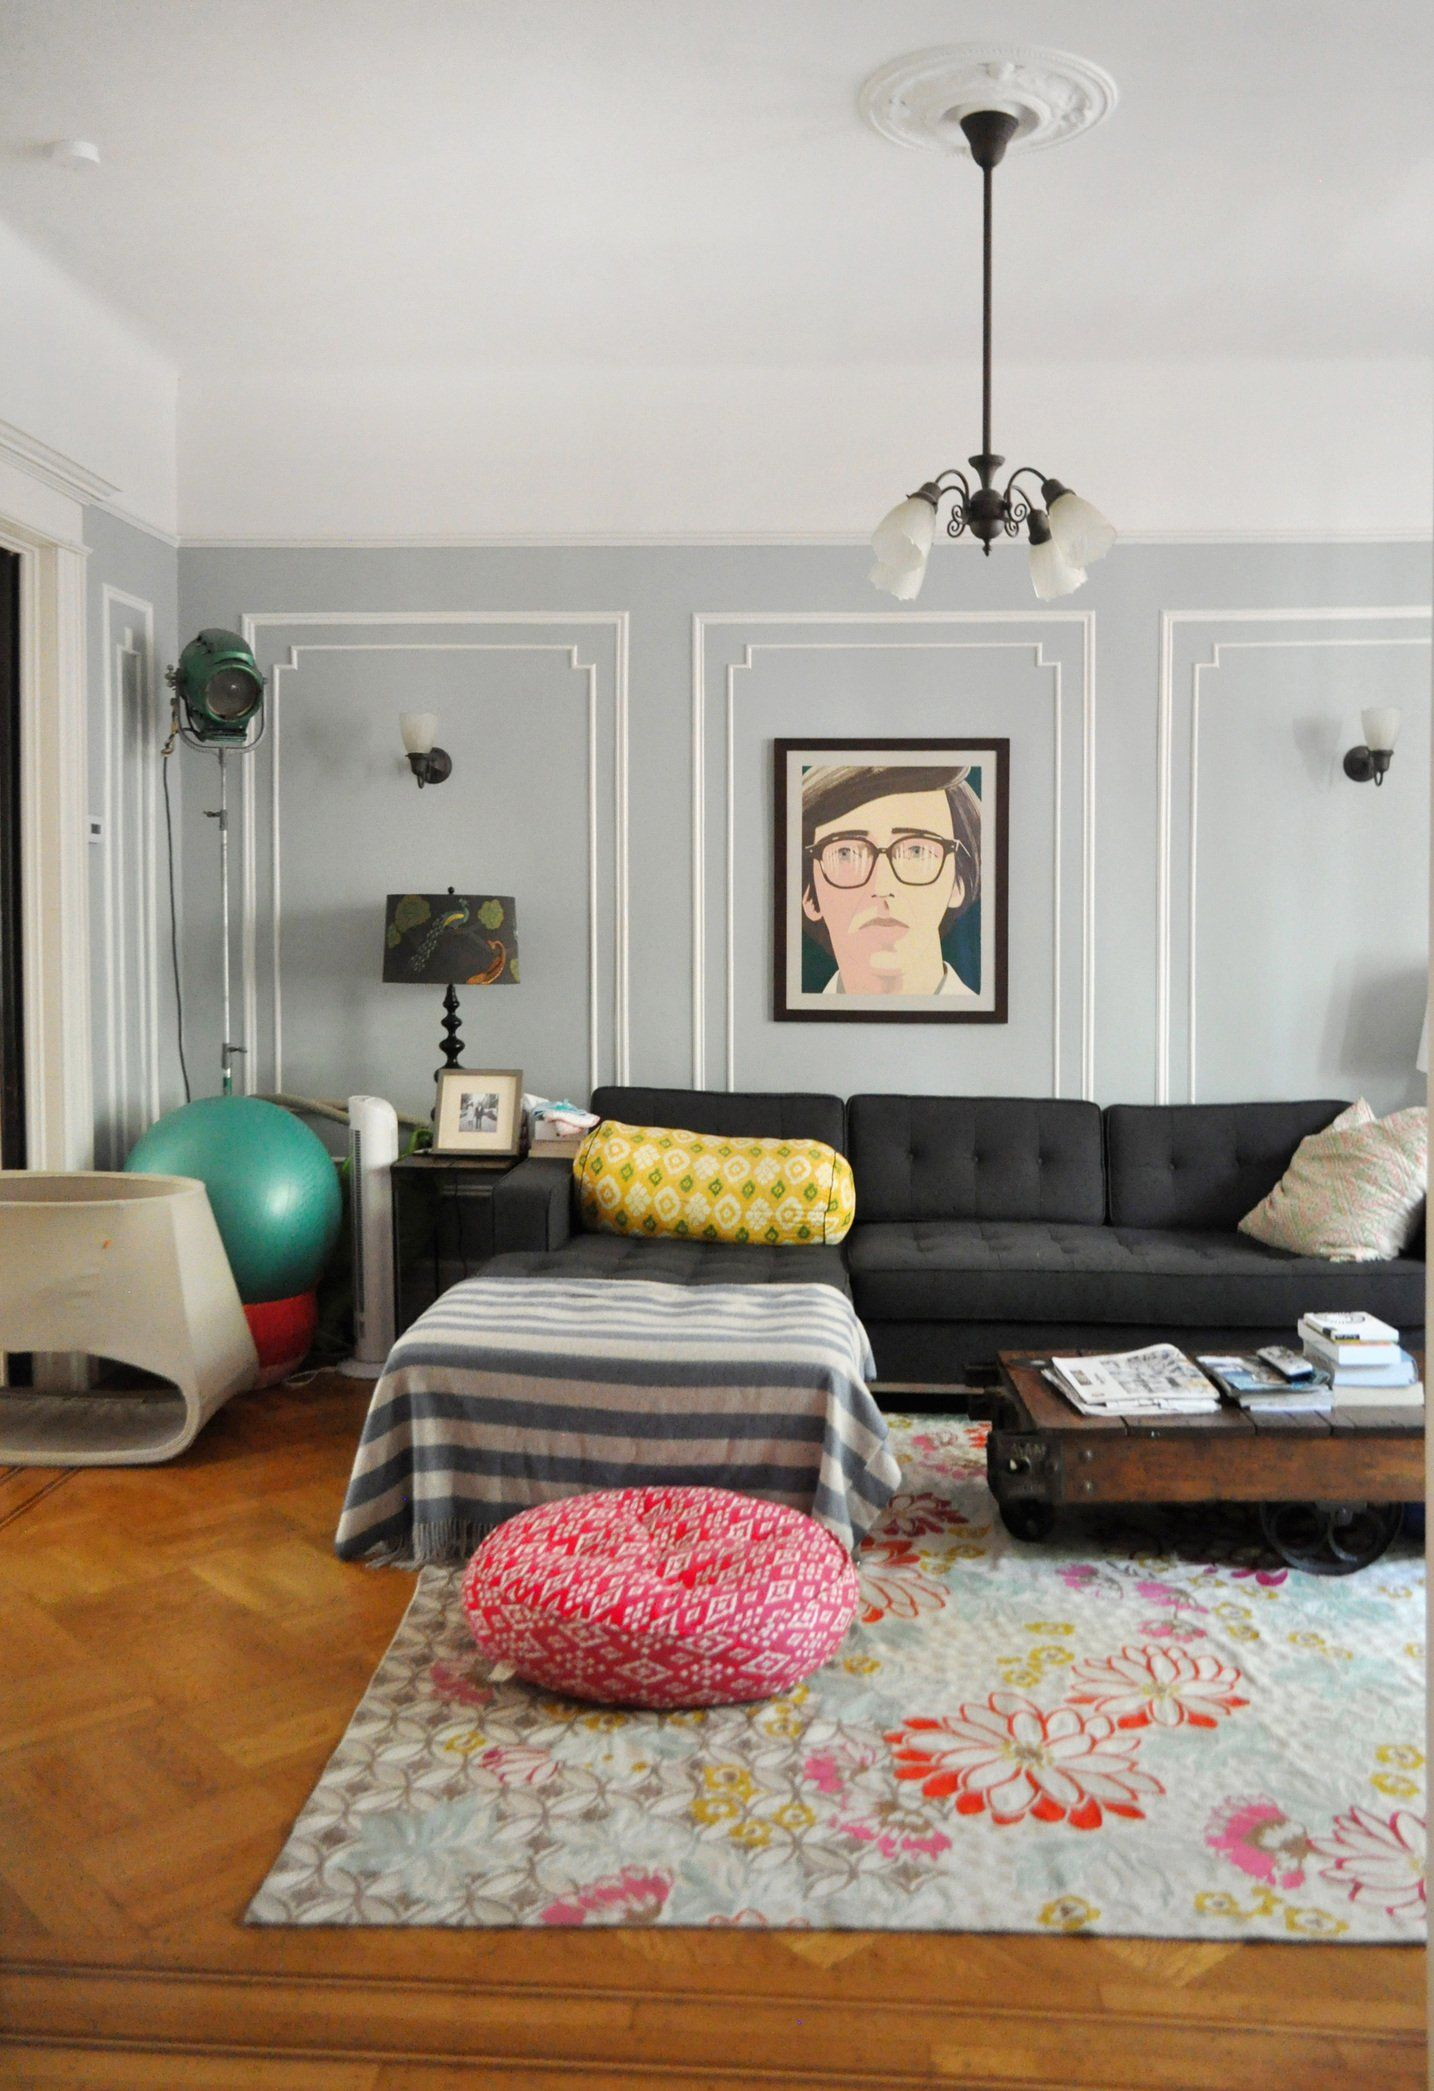 House Tour: A Whimsical Home in Brooklyn | Muebles negros, Negro y ...